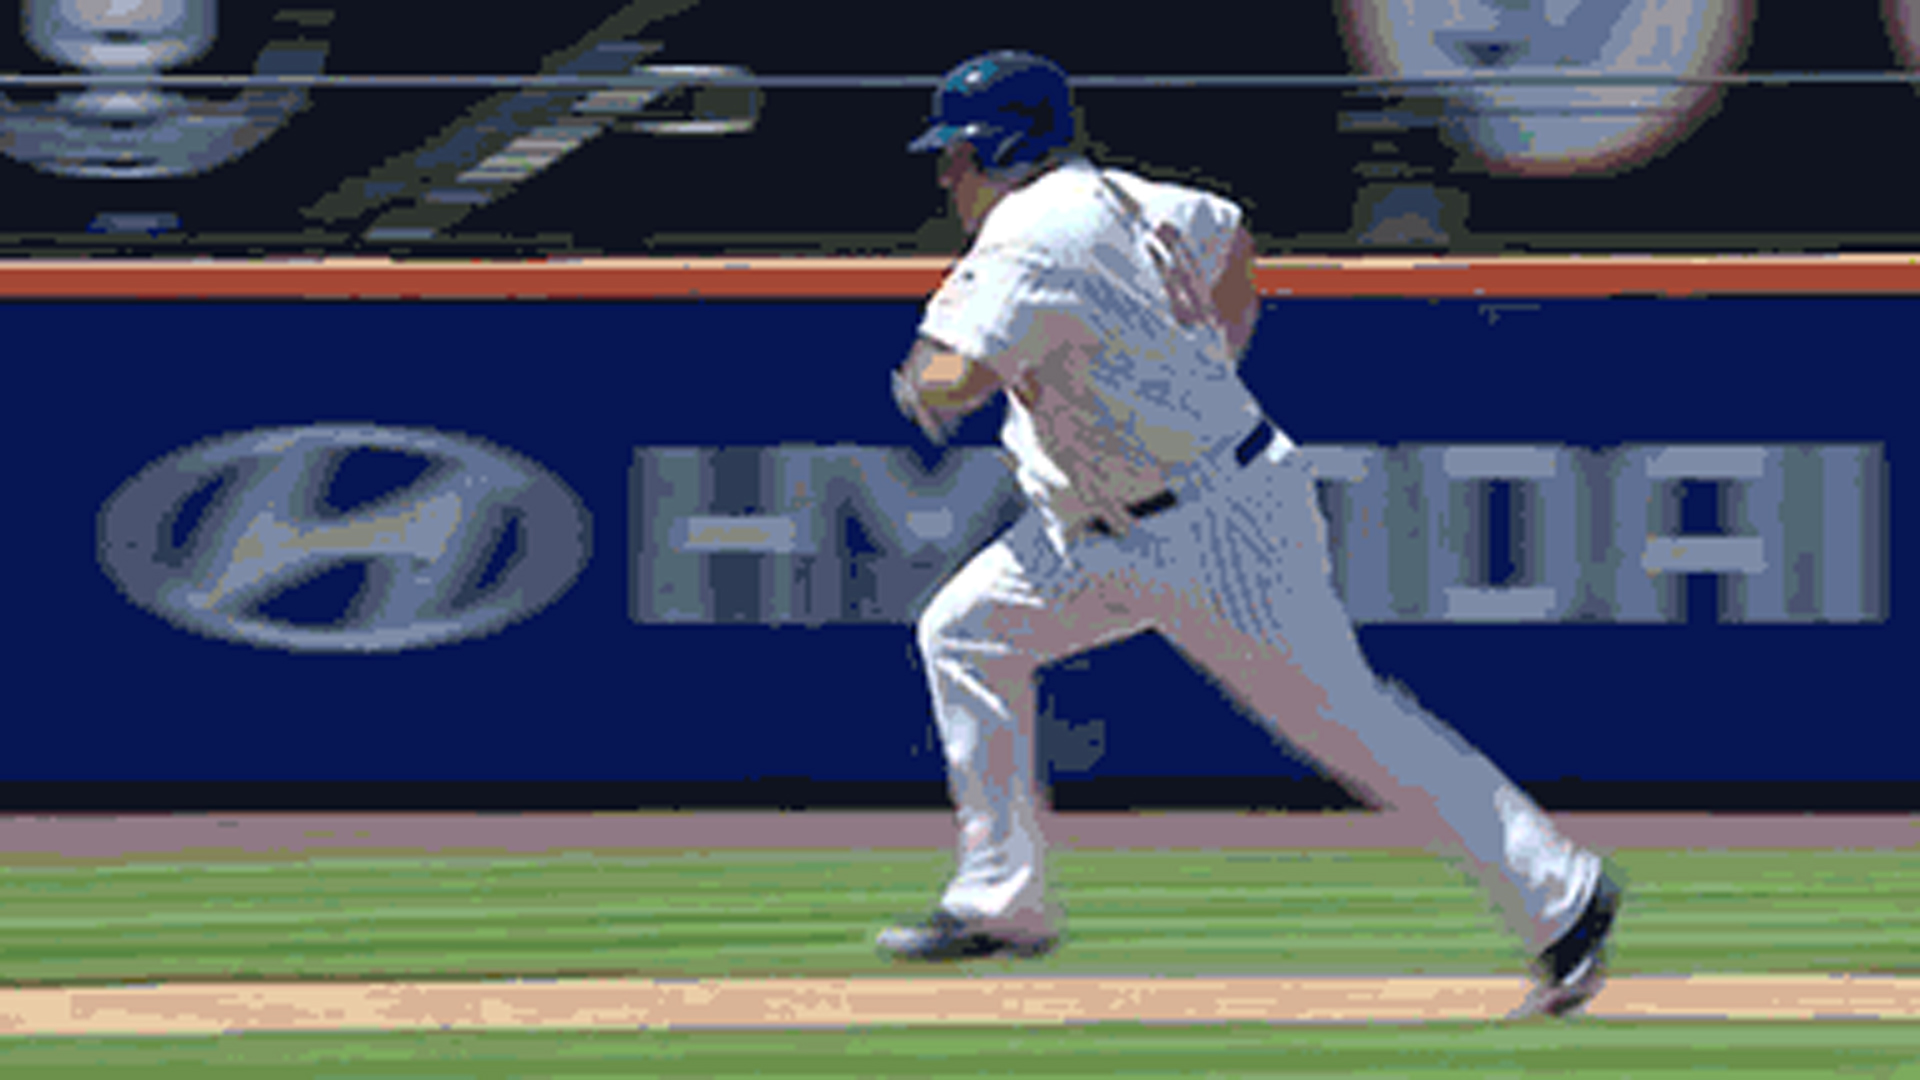 Watching Bartolo Colon run the bases will brighten up your day